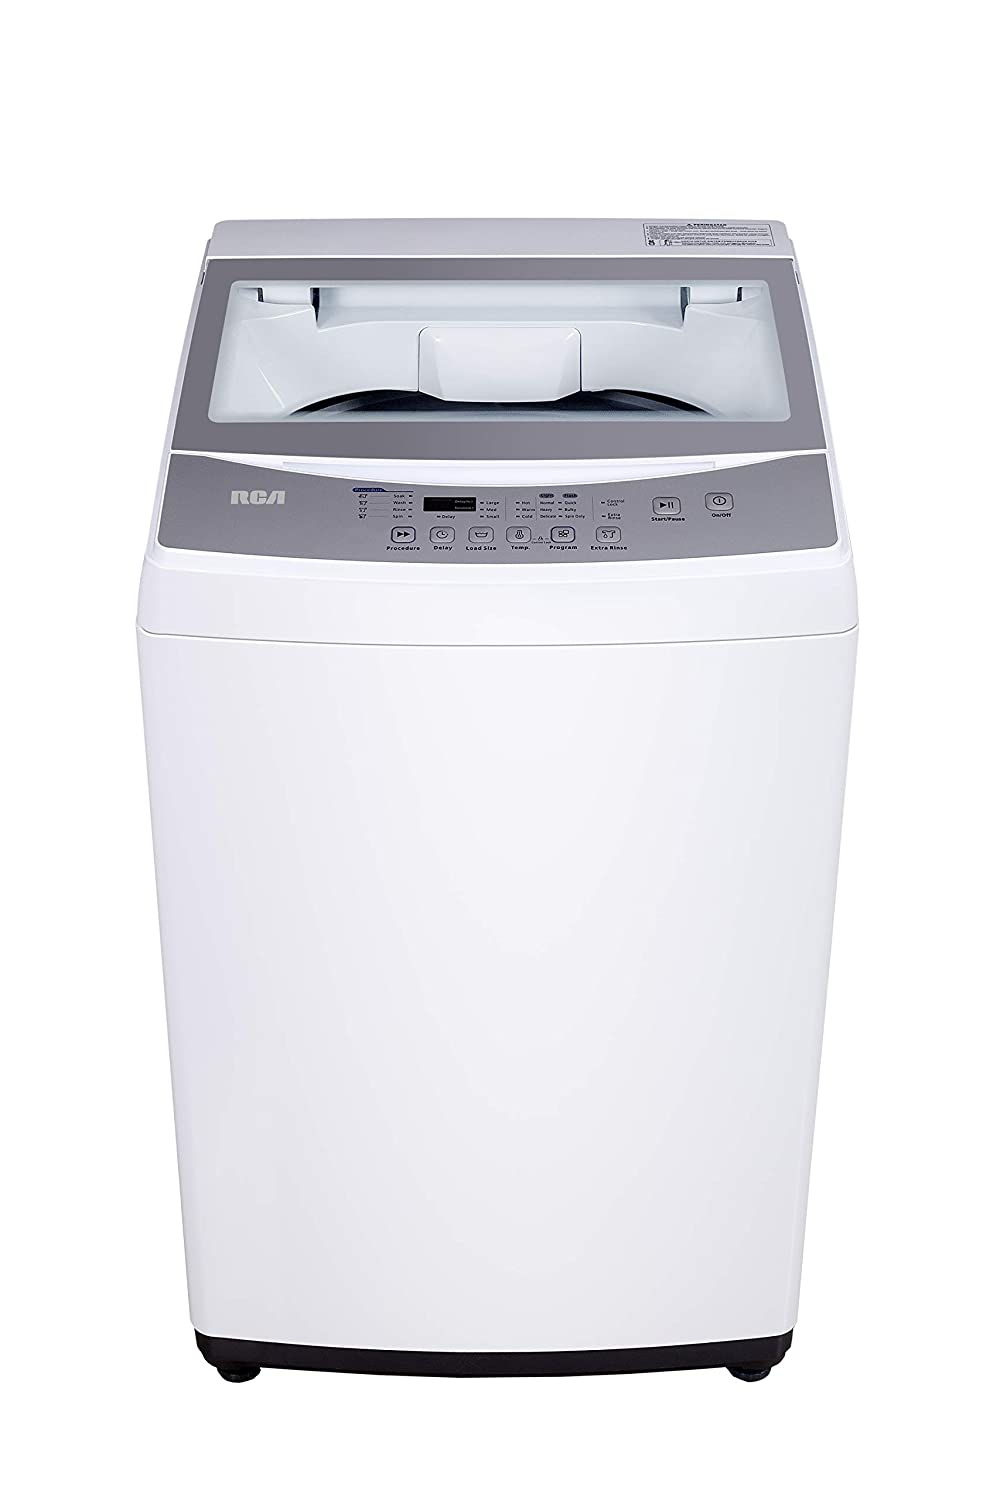 B00OFBIP0C Curtis RPW210 Rca 2.1 Cu Ft Portable Washer 71M66vkN8TL._SL1500_